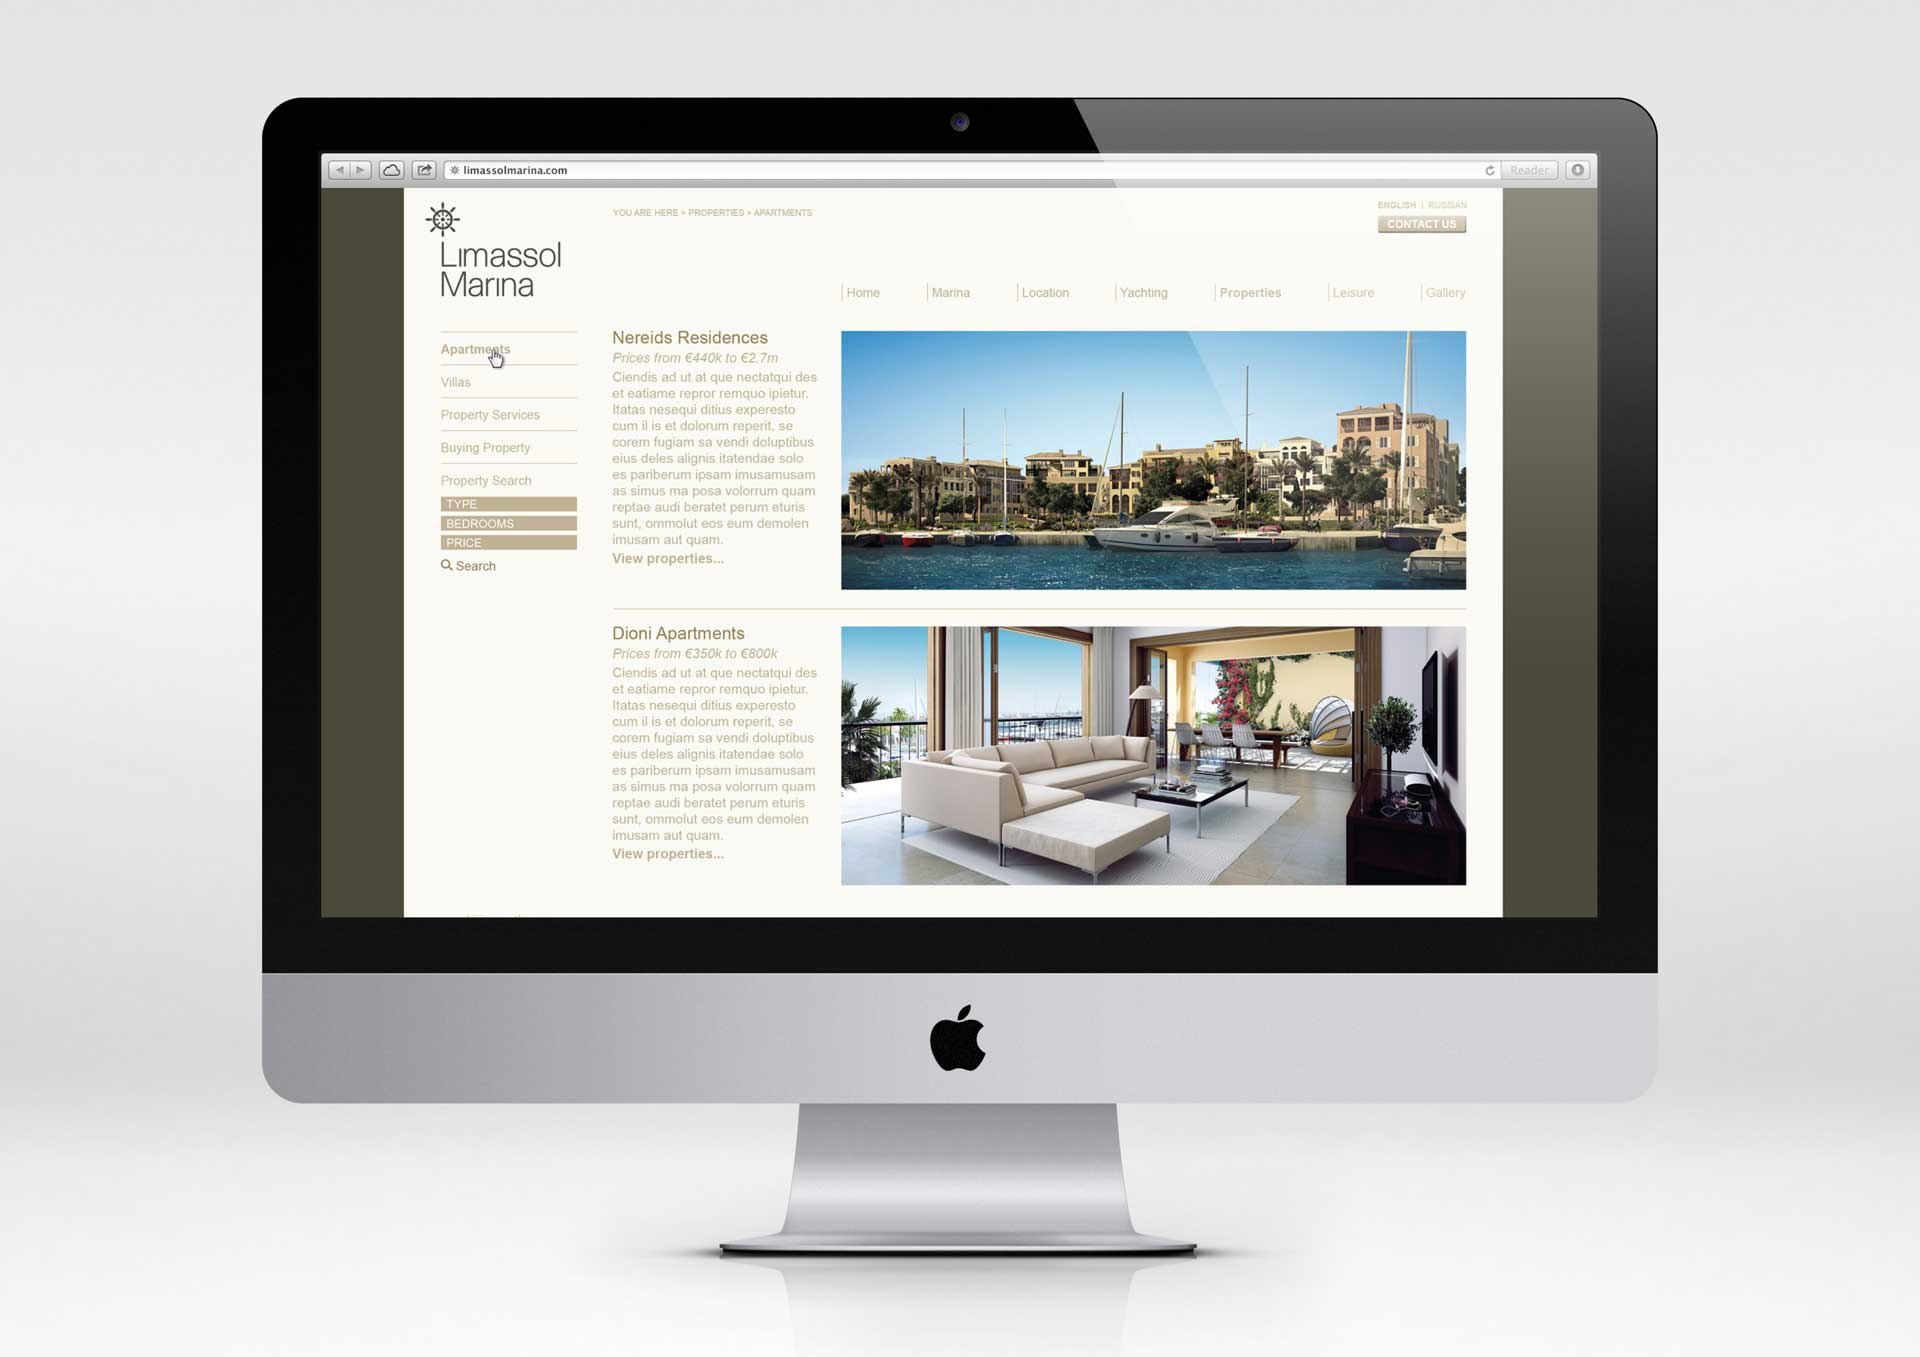 limassol-marina-website-3